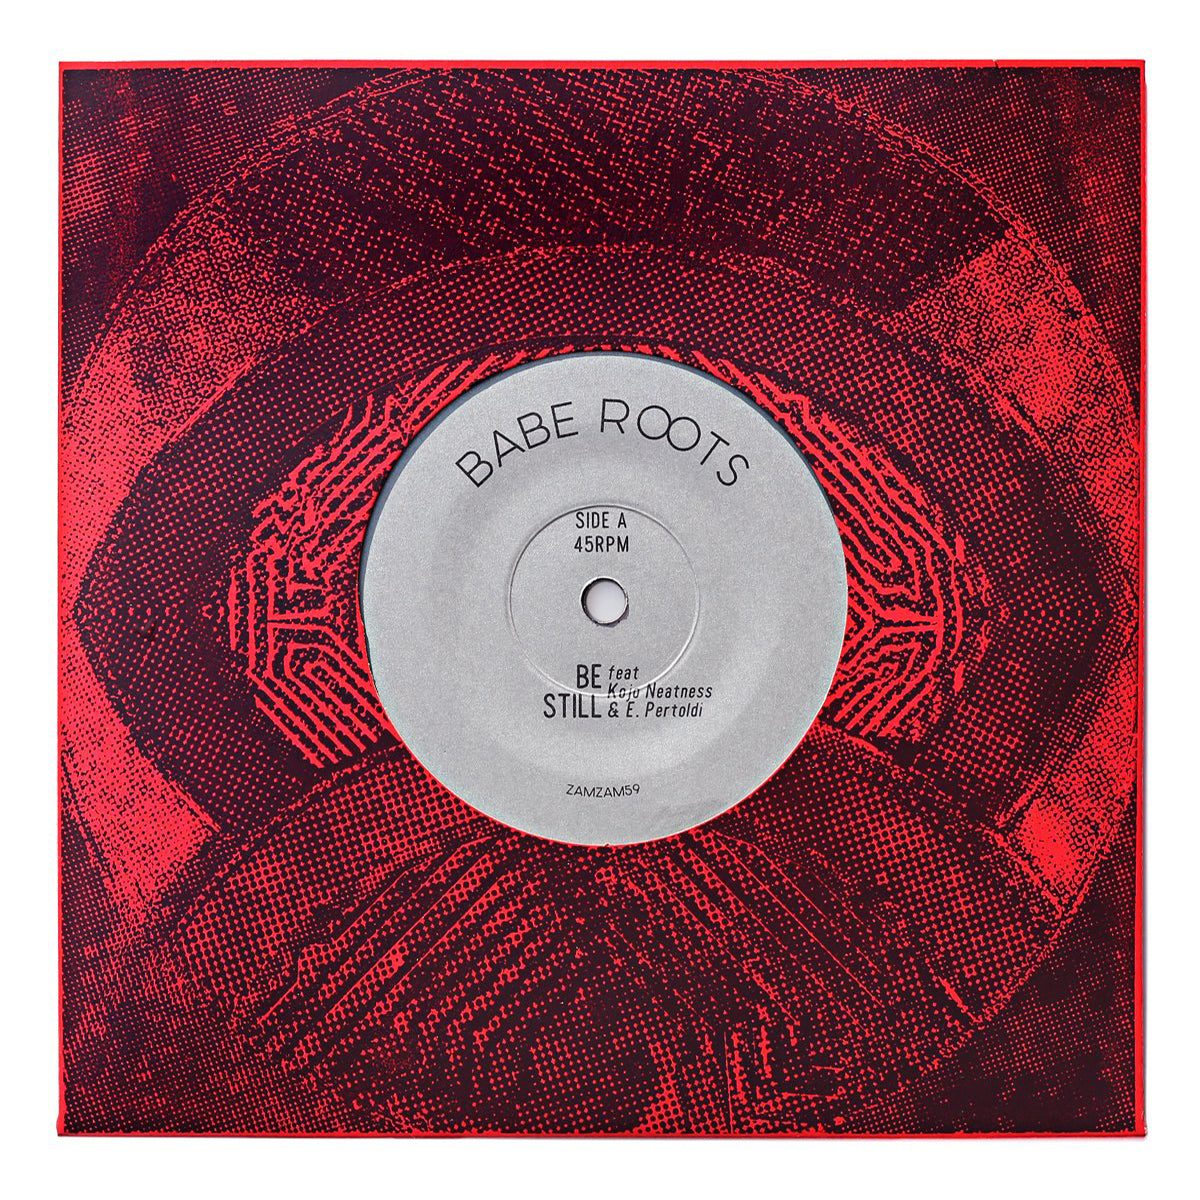 "Babe Roots - Be Still / Rawness [7"" Vinyl]"